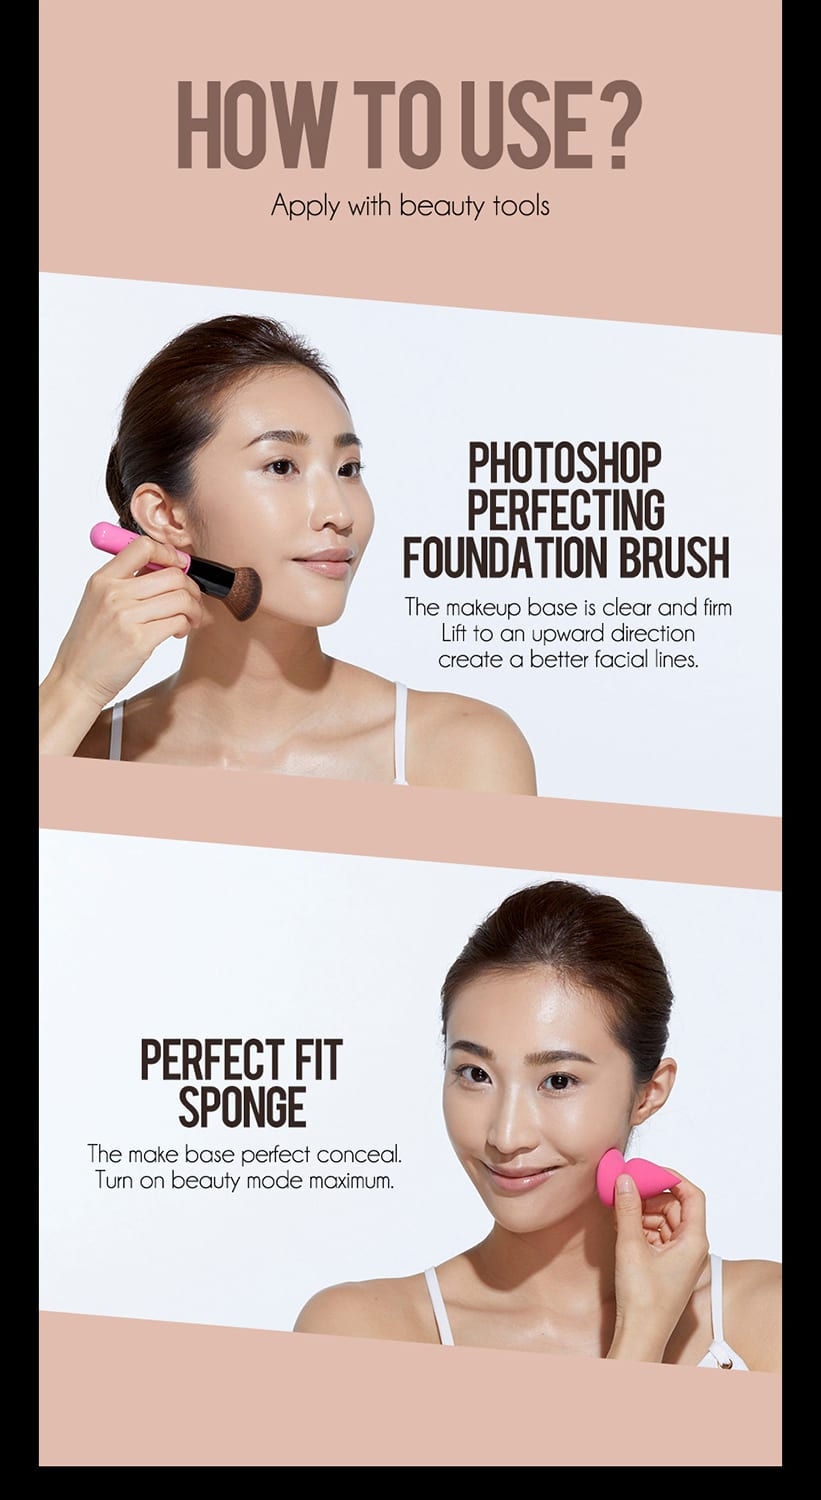 Perfect Liquid Foundation - How to use